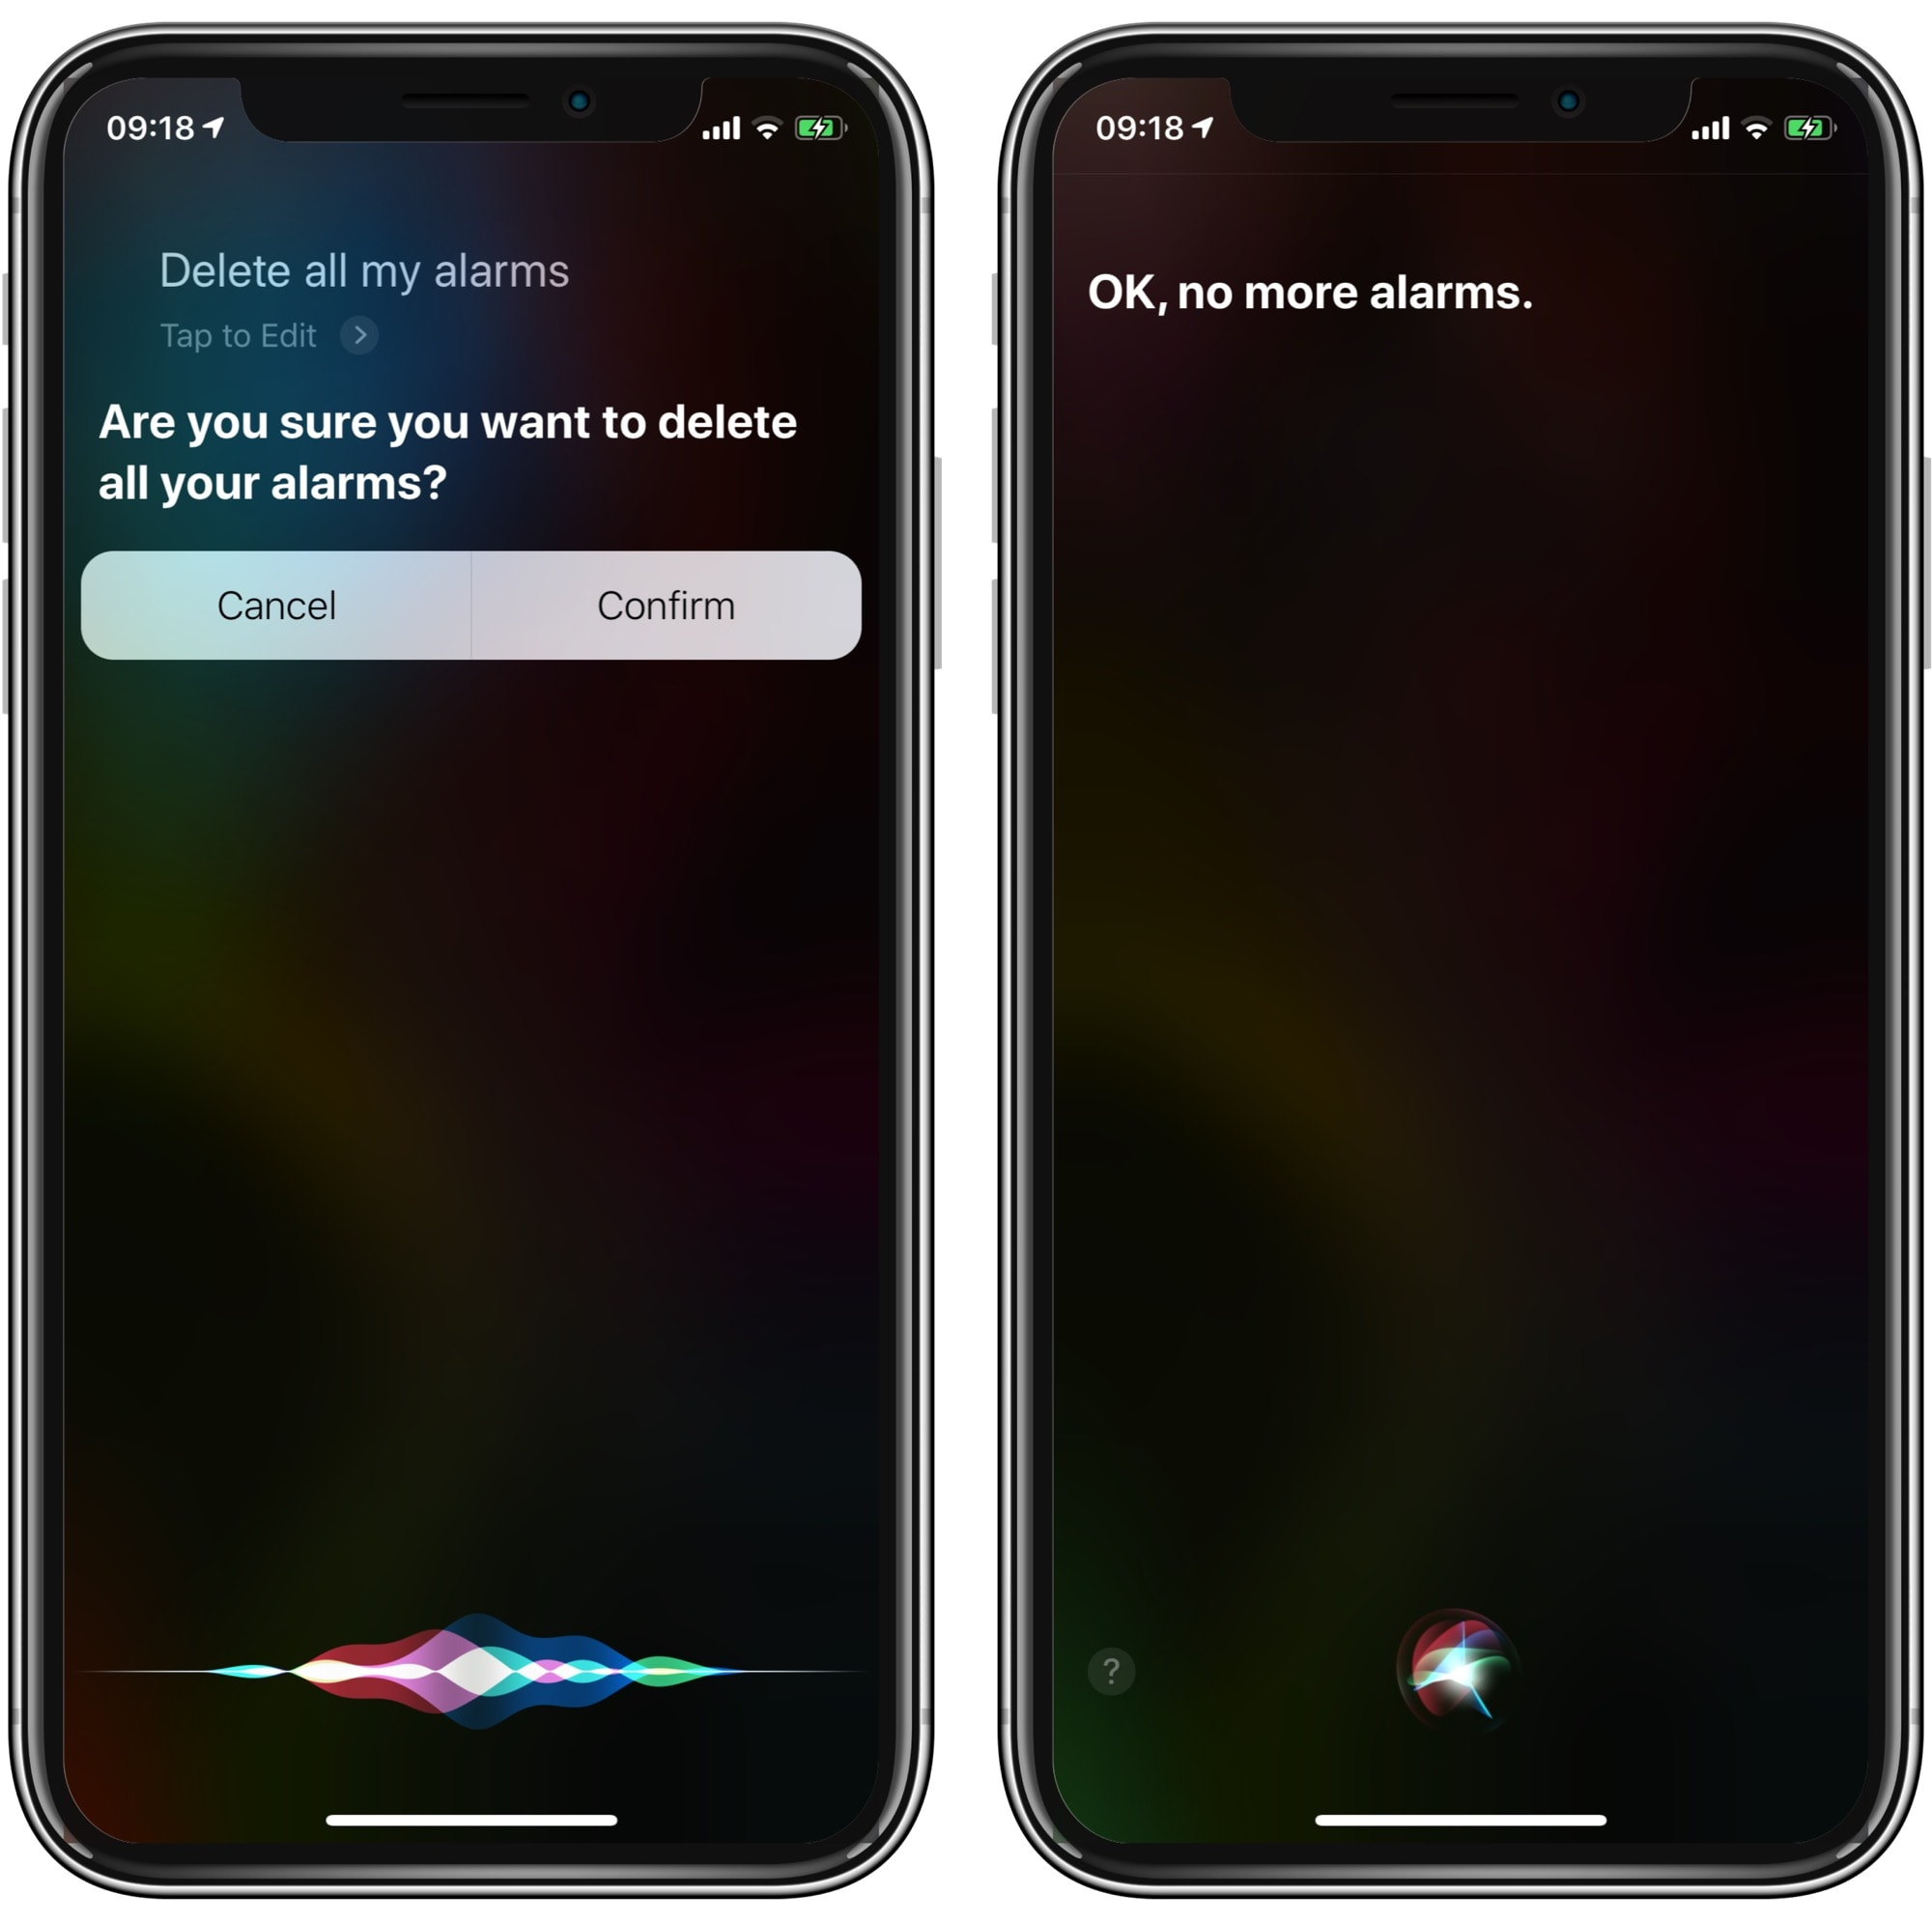 Siri can delete all your alarms in one go.